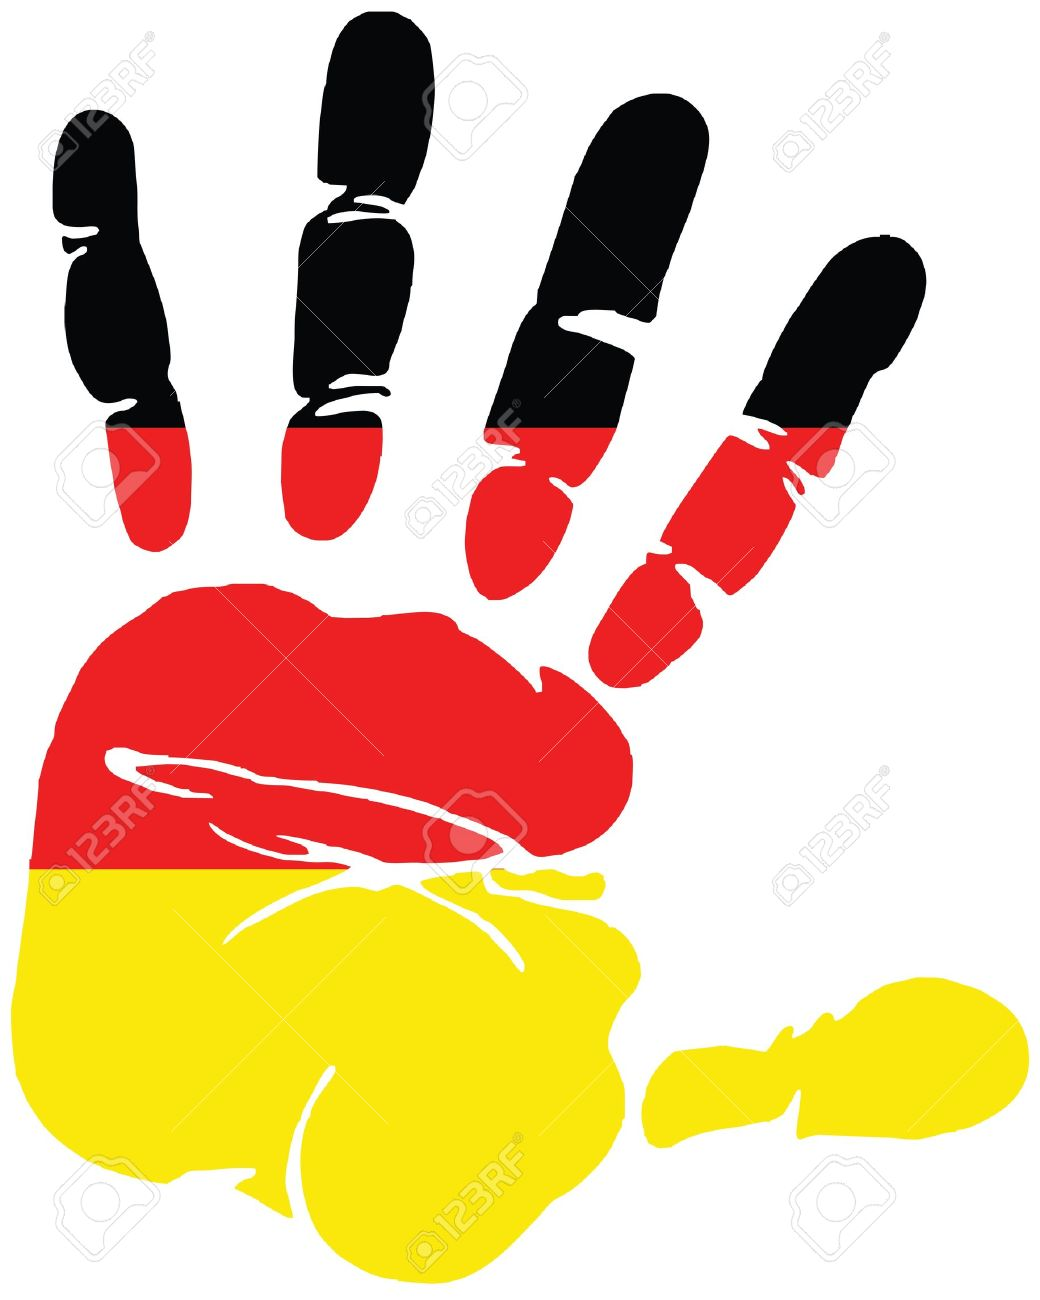 handprint for germany with colors of german flag royalty free rh 123rf com handprint vector free handprint vector clipart